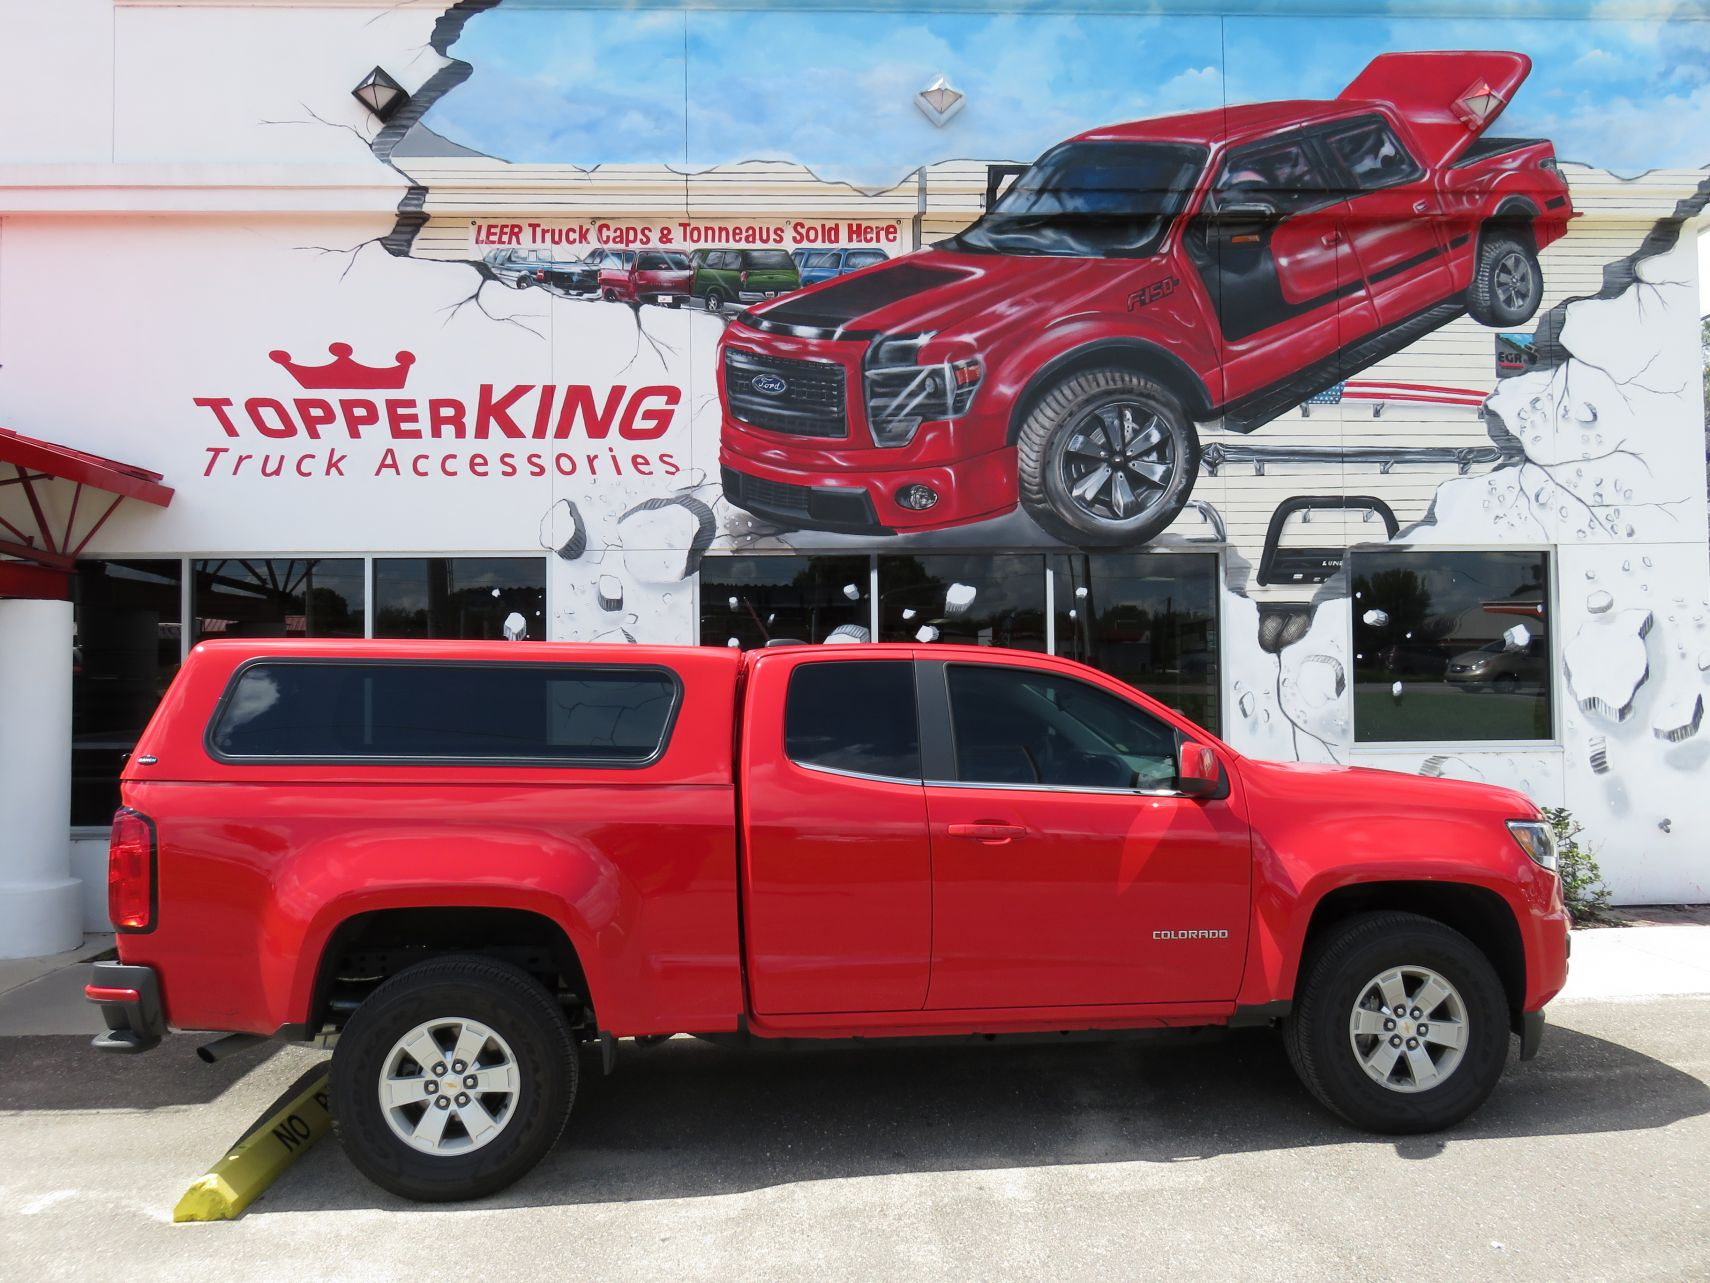 2016 Chevy Colorado with Ranch Echo Fiberglass Topper and Tint by TopperKING in Brandon, FL 813-689-2449 or Clearwater, FL 727-530-9066. Call today to start!